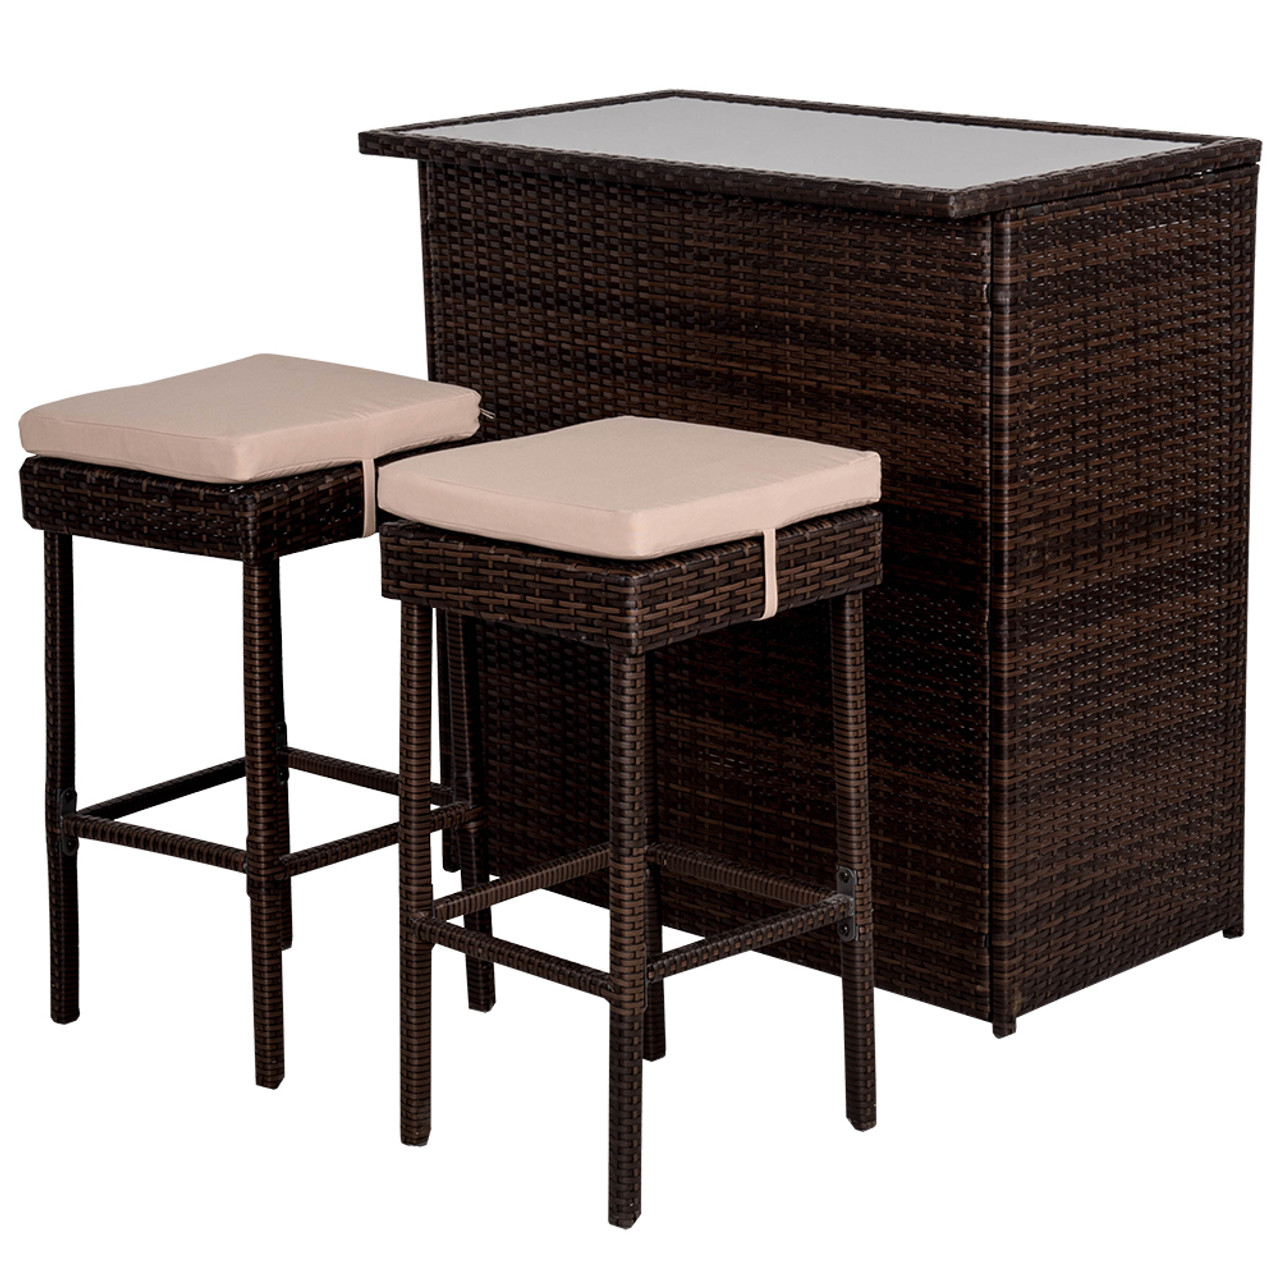 Deluxe 3pc Rattan Wicker Bar Set With Cushions And 2 Stools